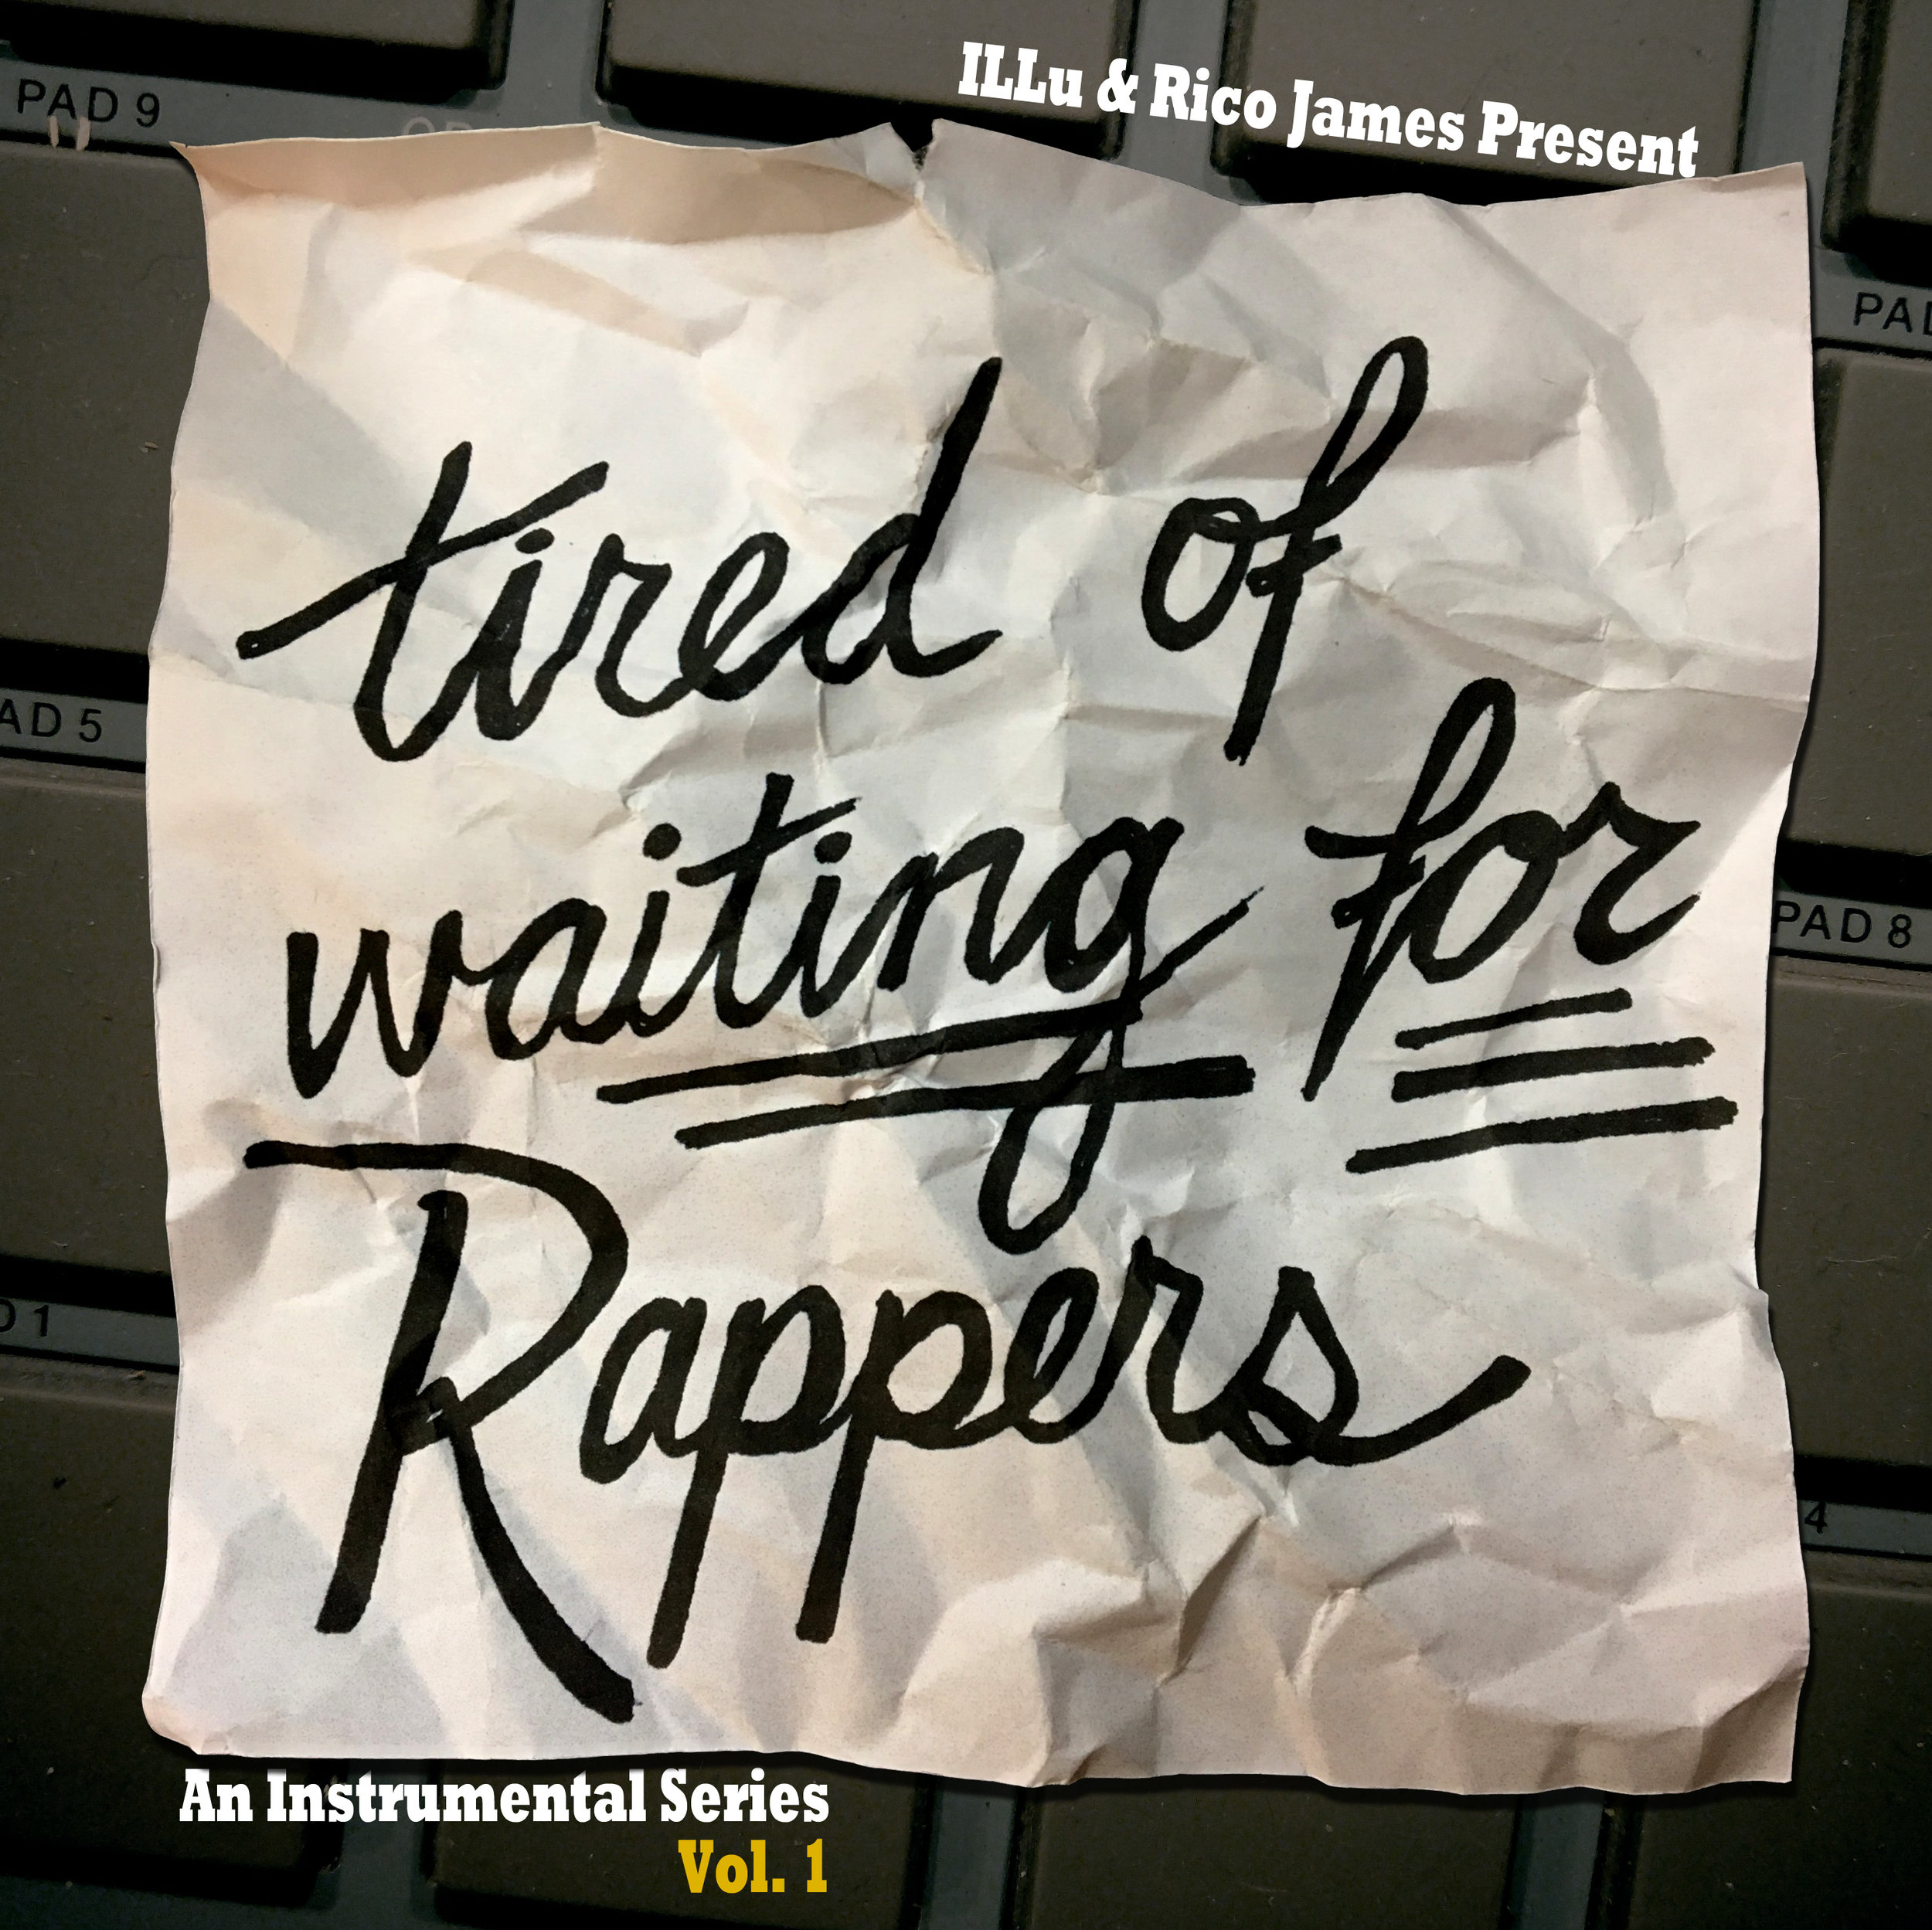 Tired Of Waiting For Rappers Vol. 1 - by illu & rico james